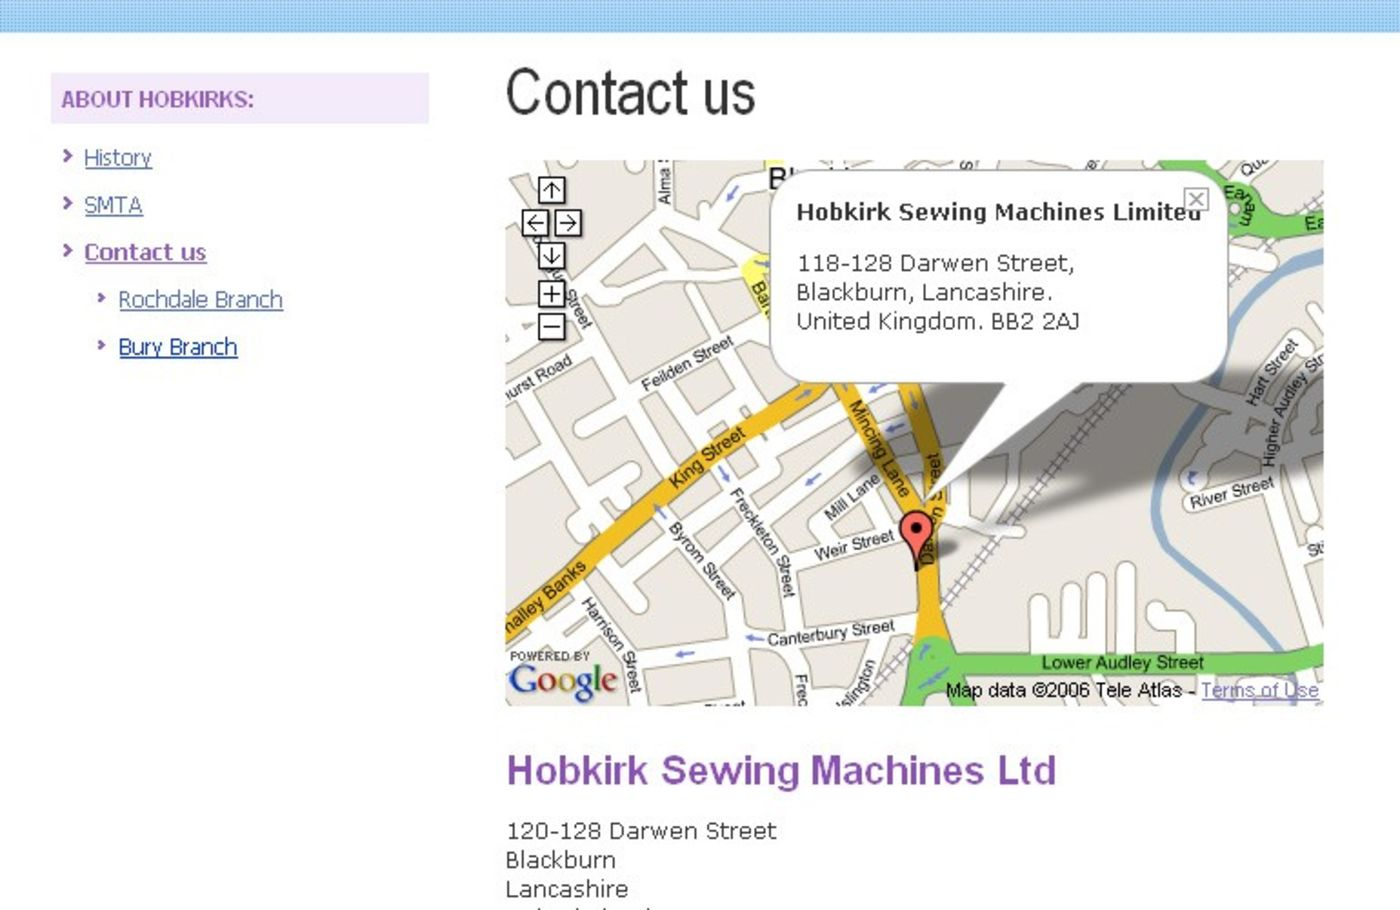 Sewing Machines from Hobkirk Contact us